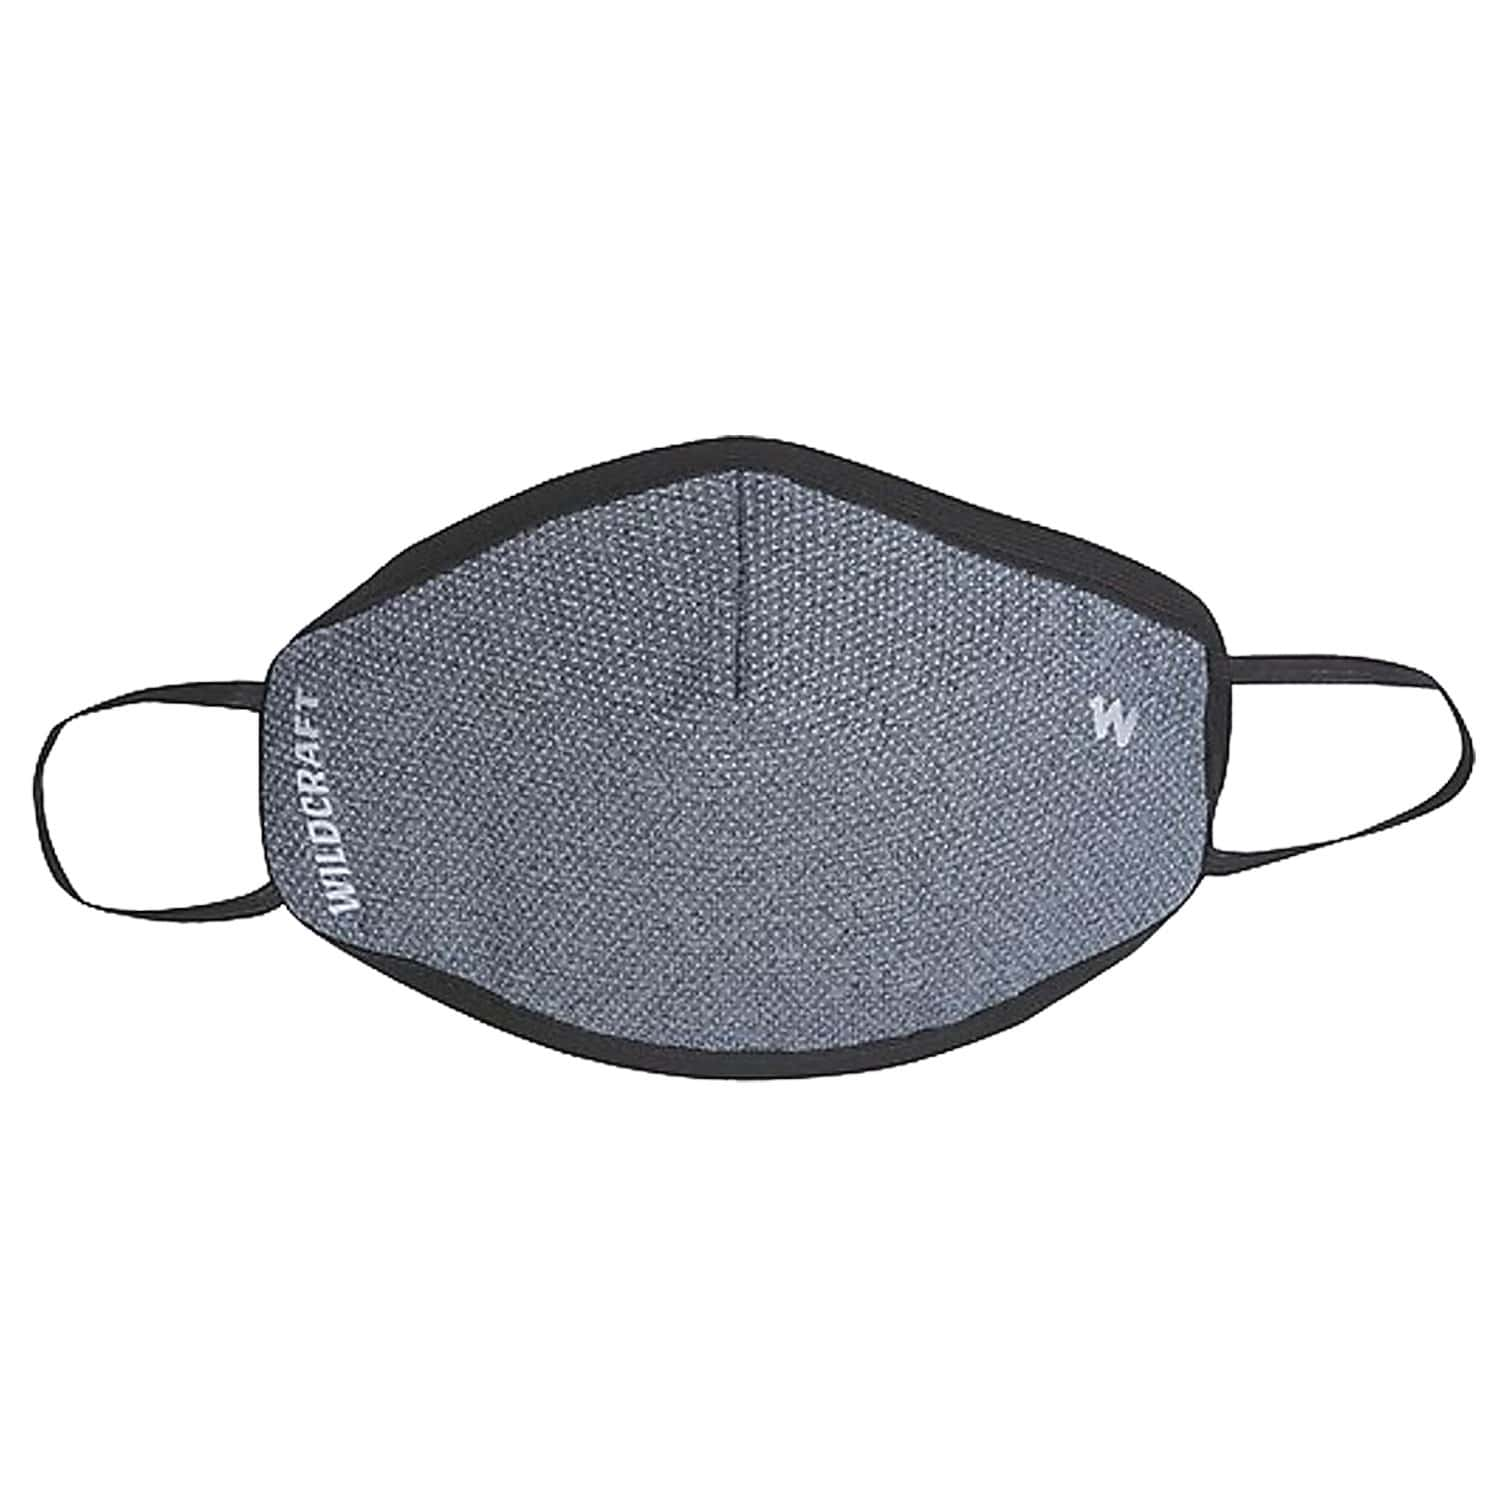 Wildcraft Supermask W95+ Reusable Outdoor Respirator Face Mask Anti-dust  Anti-bacterial   Anti-pollution- Size M (grey)